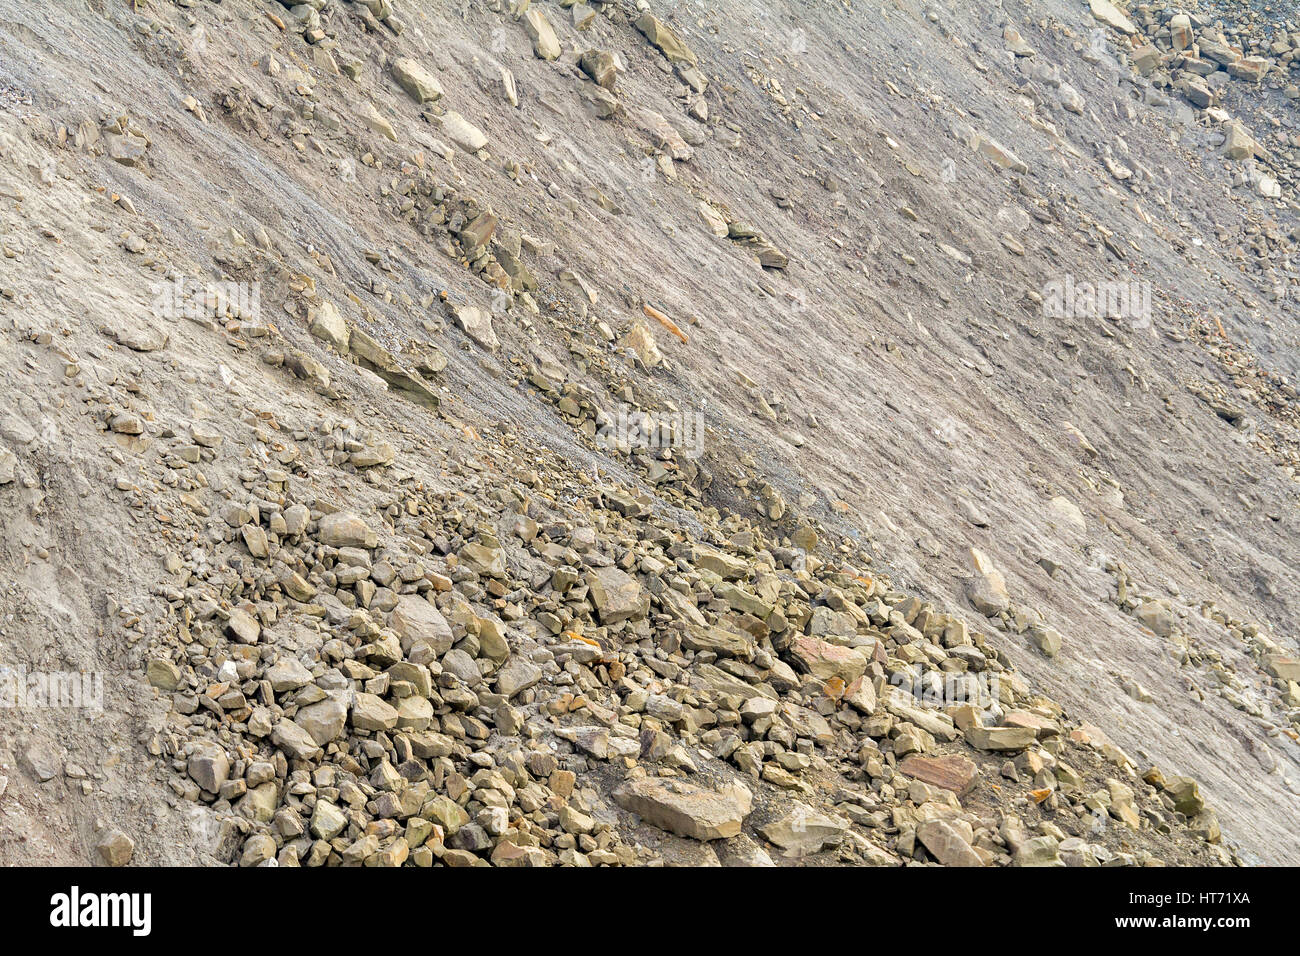 full frame shot of a hill slope with lots of stones and pebbles Stock Photo